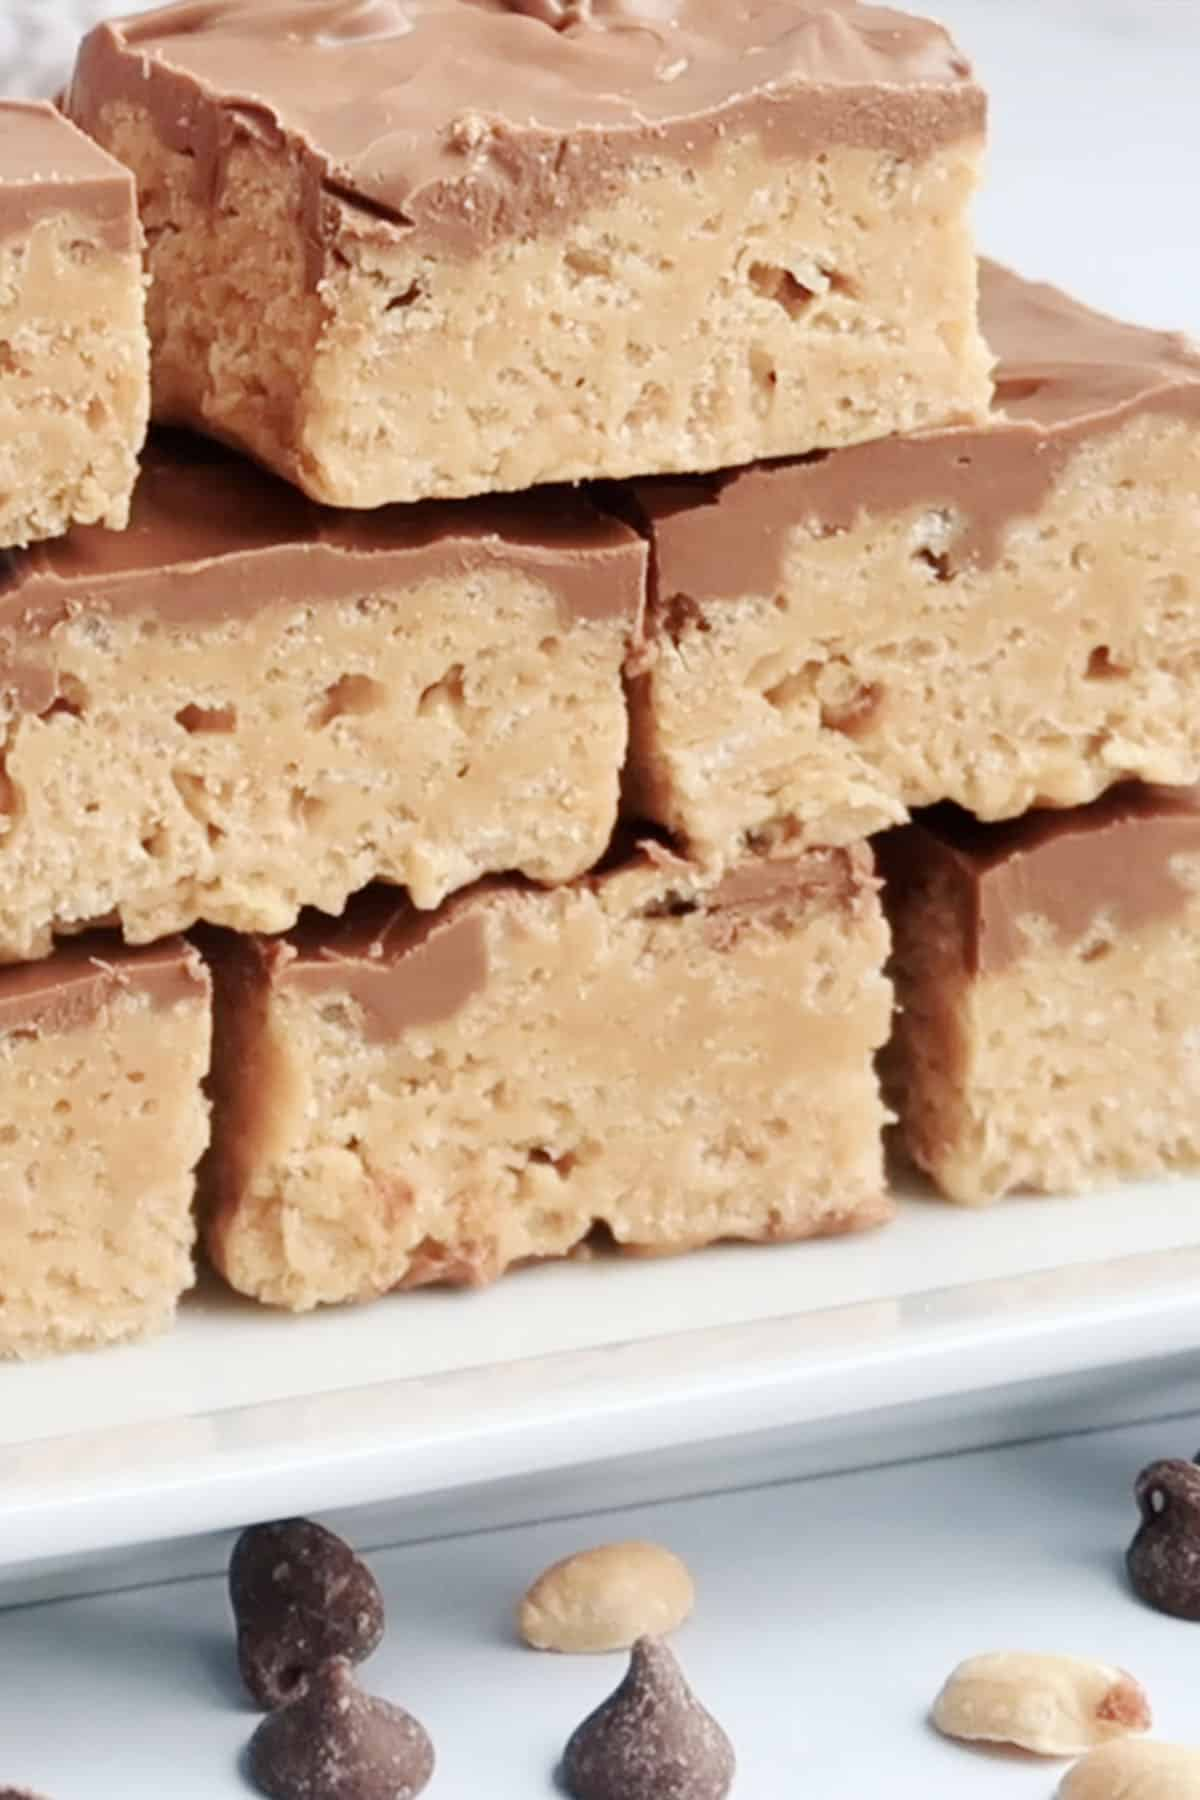 Scotcharoo bars stacked on top of each other on a plate.